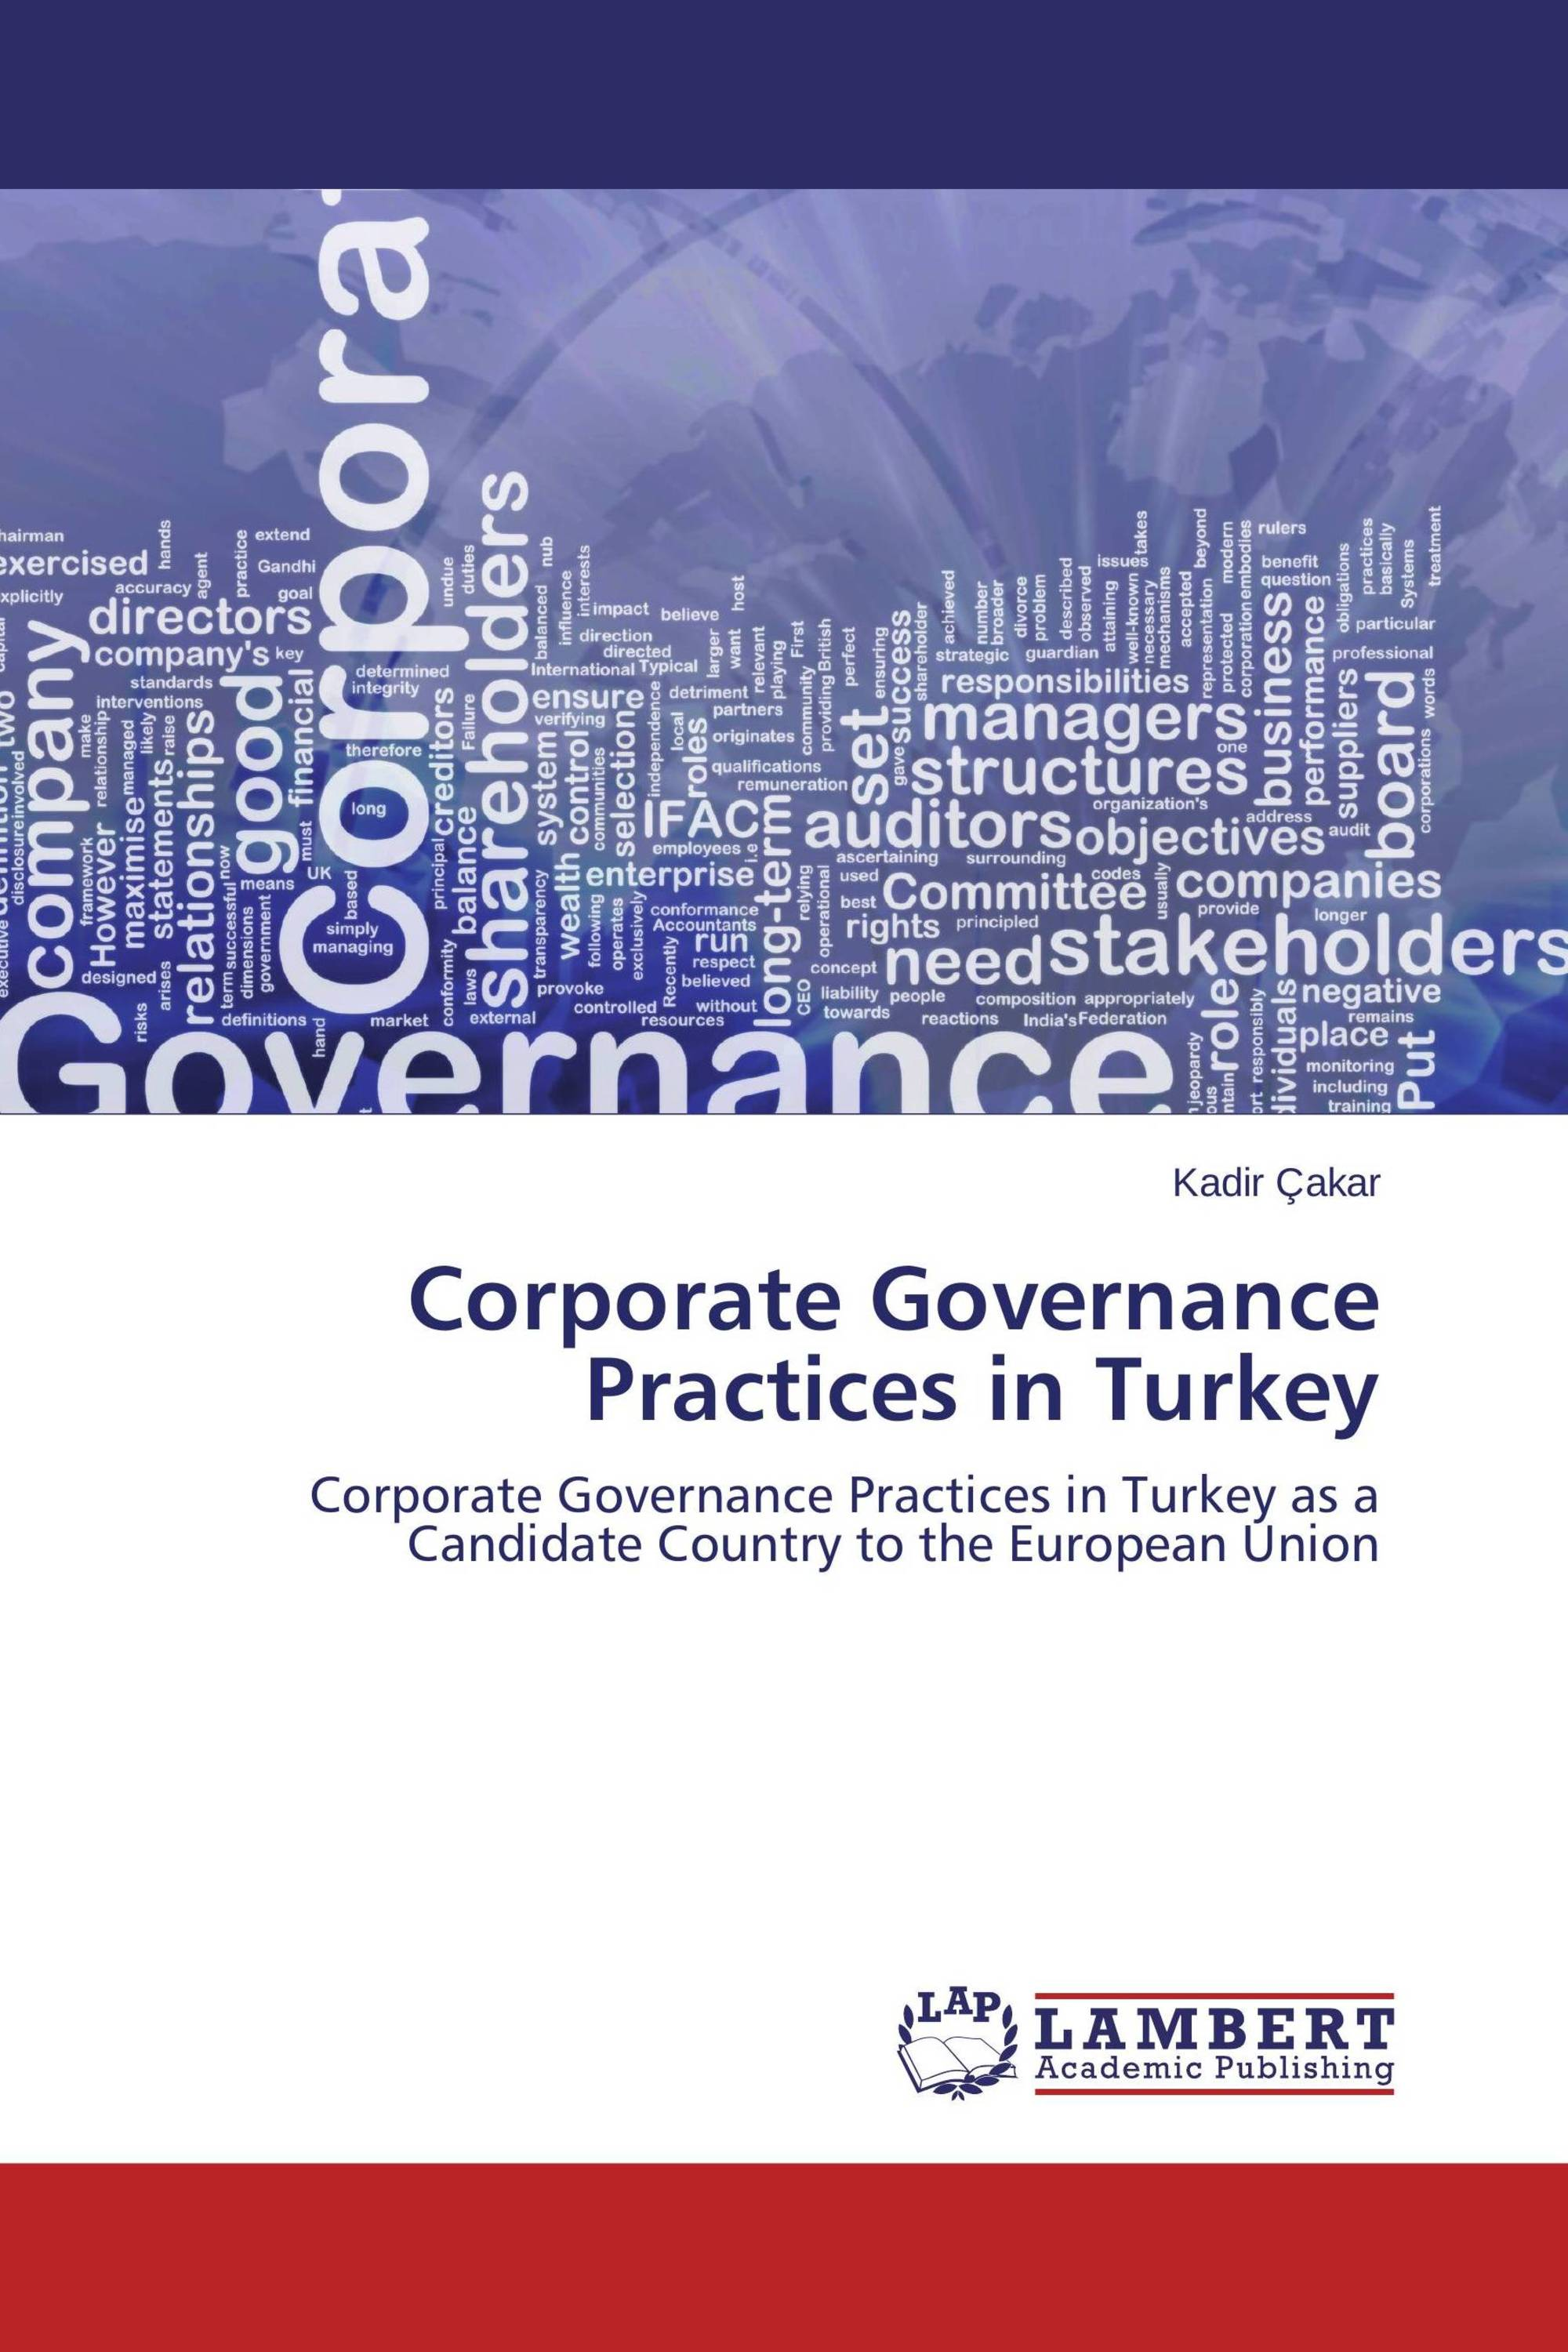 an evaluation of corporate governance practices